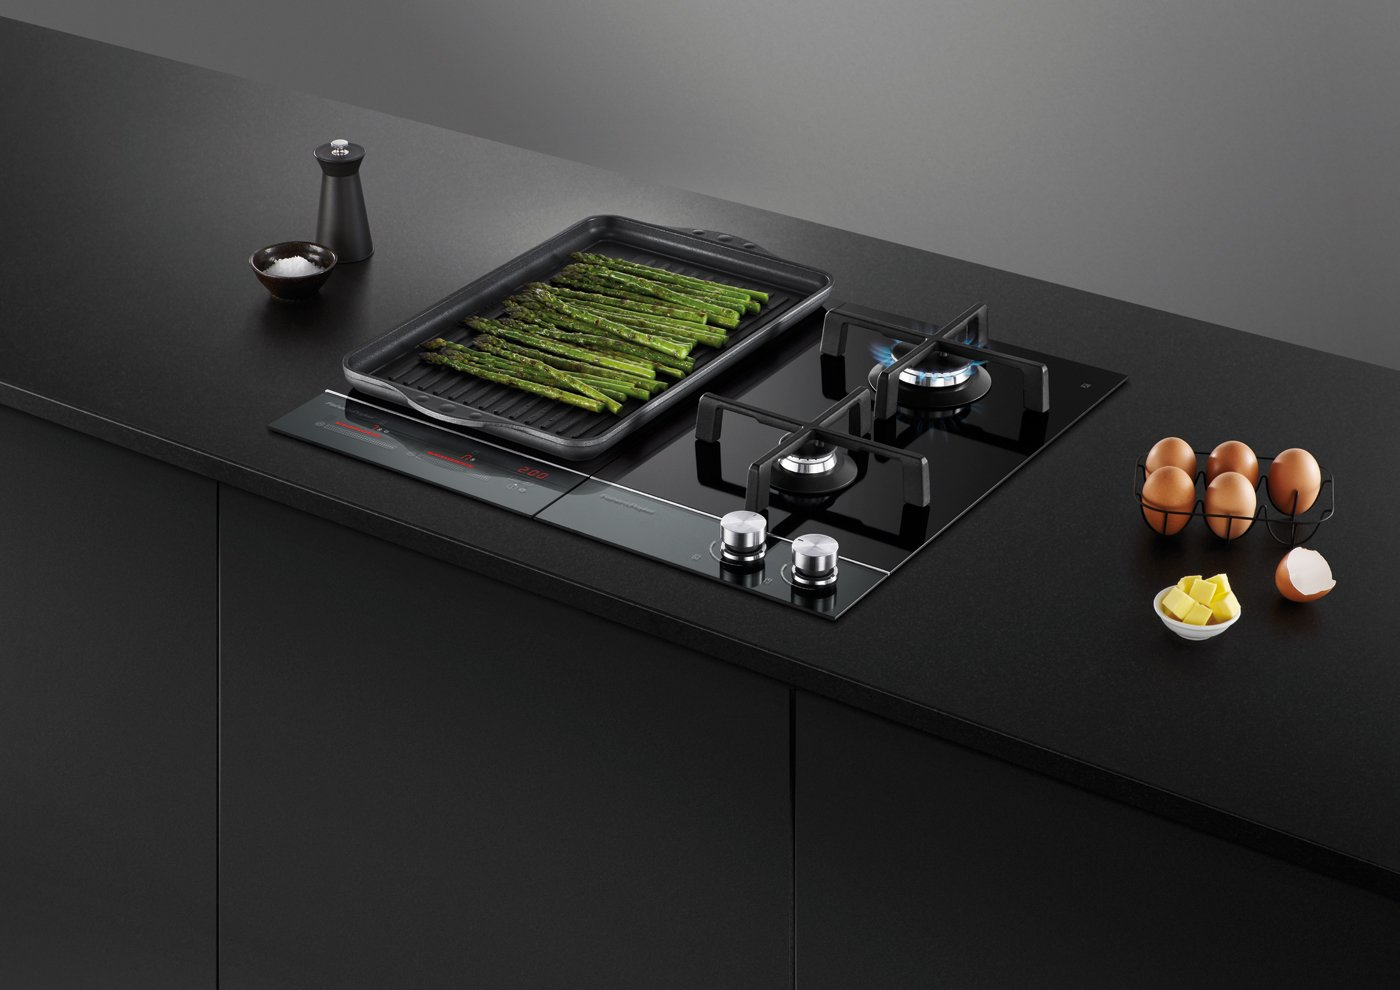 sharpen cooktop kenmore wid product gas d spin countertop details hei op outlet sears stove sealed jsp prod